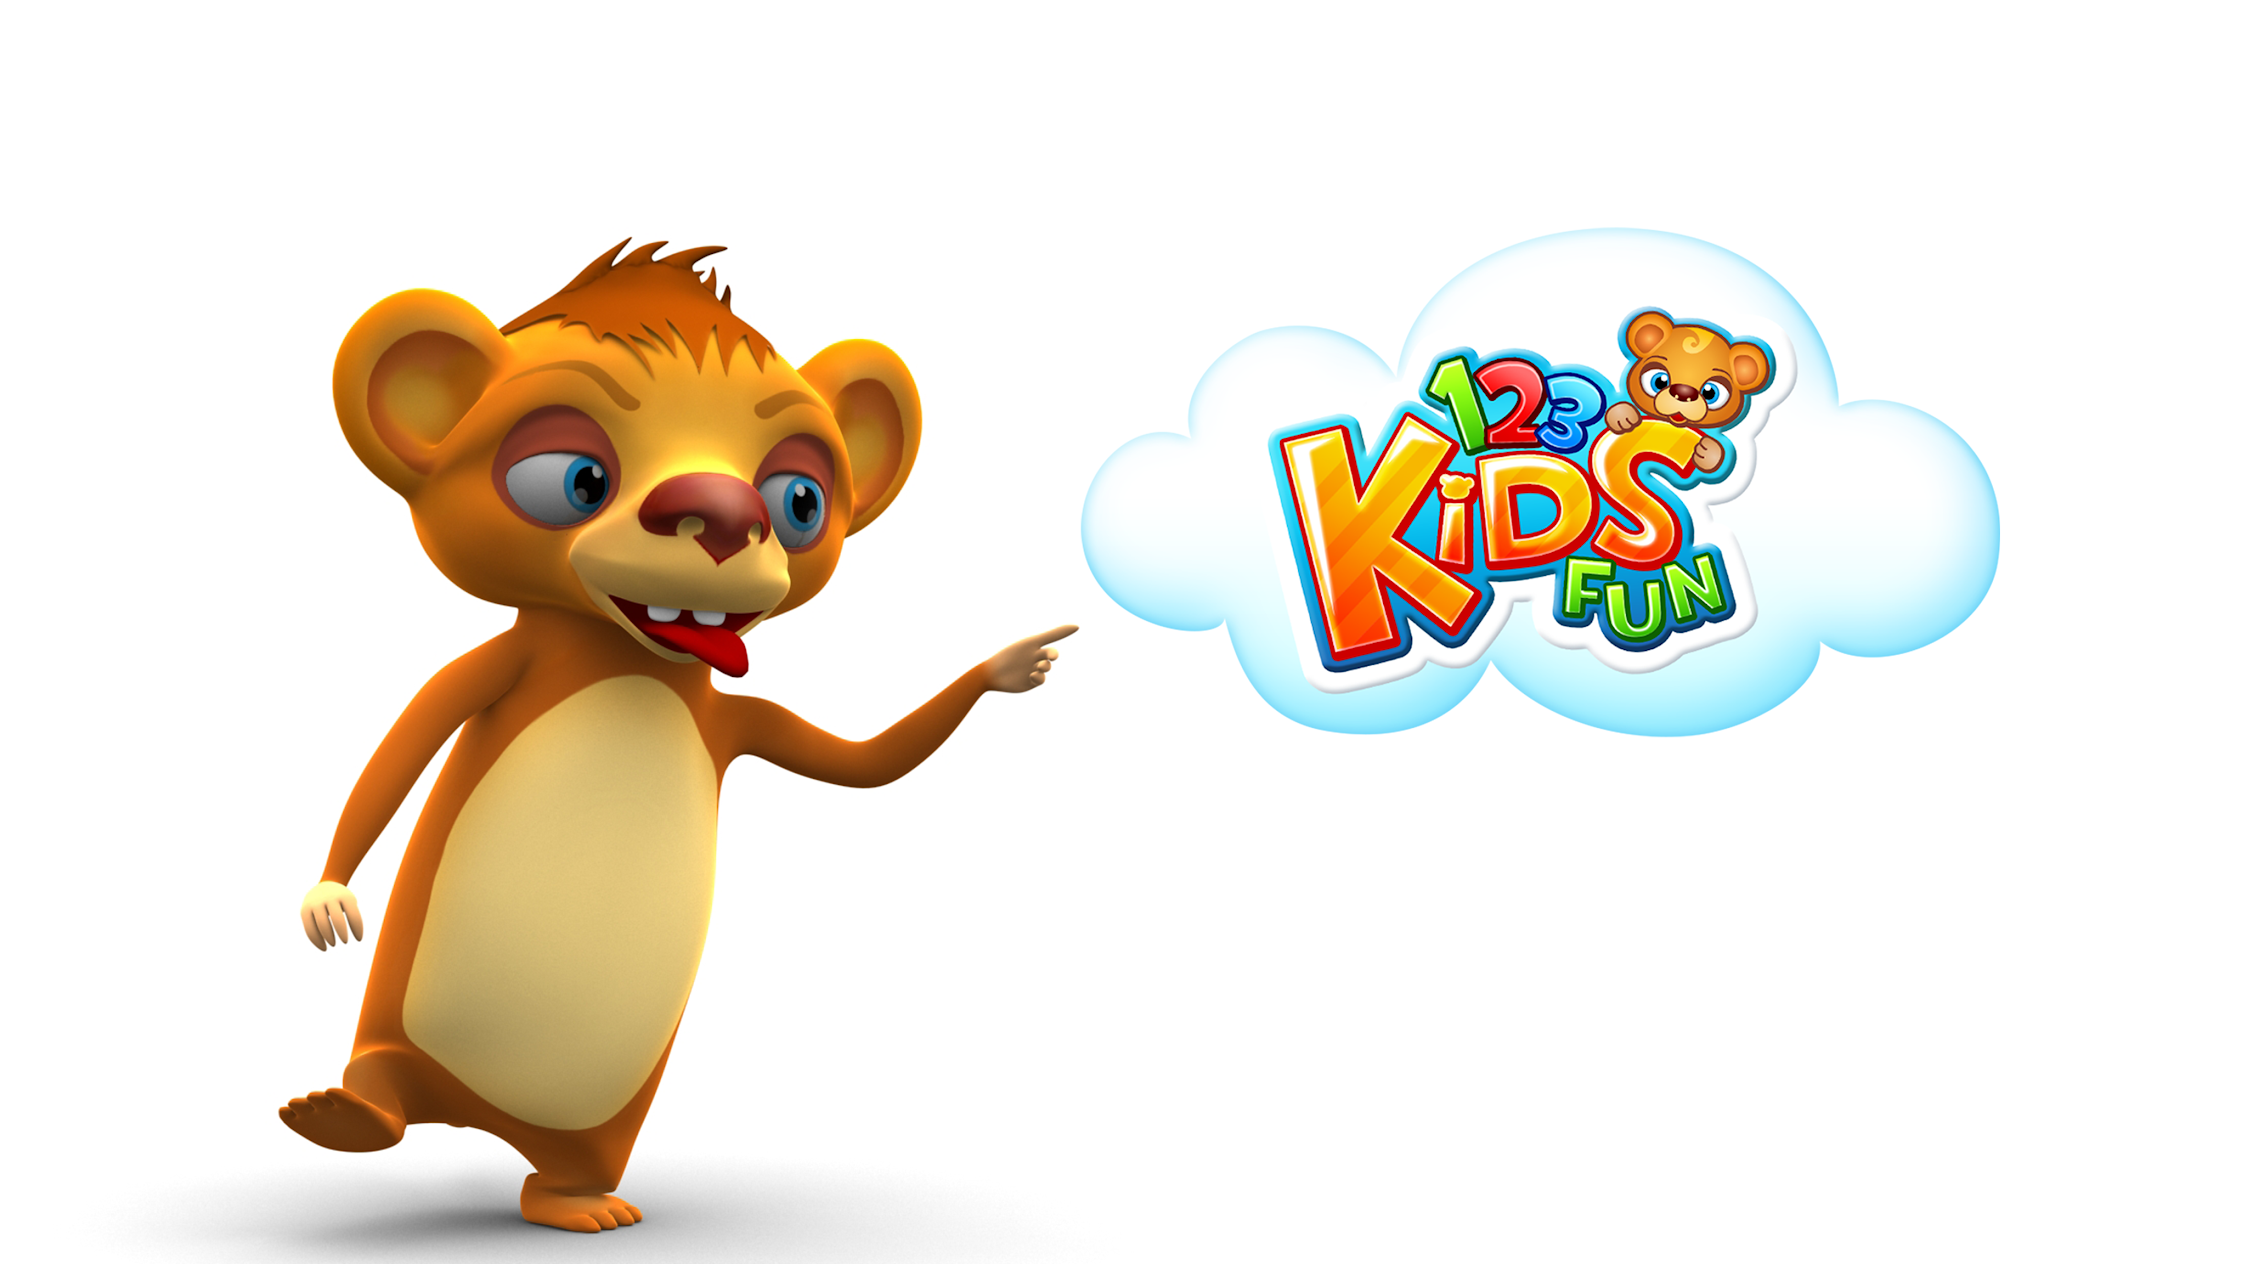 123 kids fun apps - educational apps for kids - apps on google play